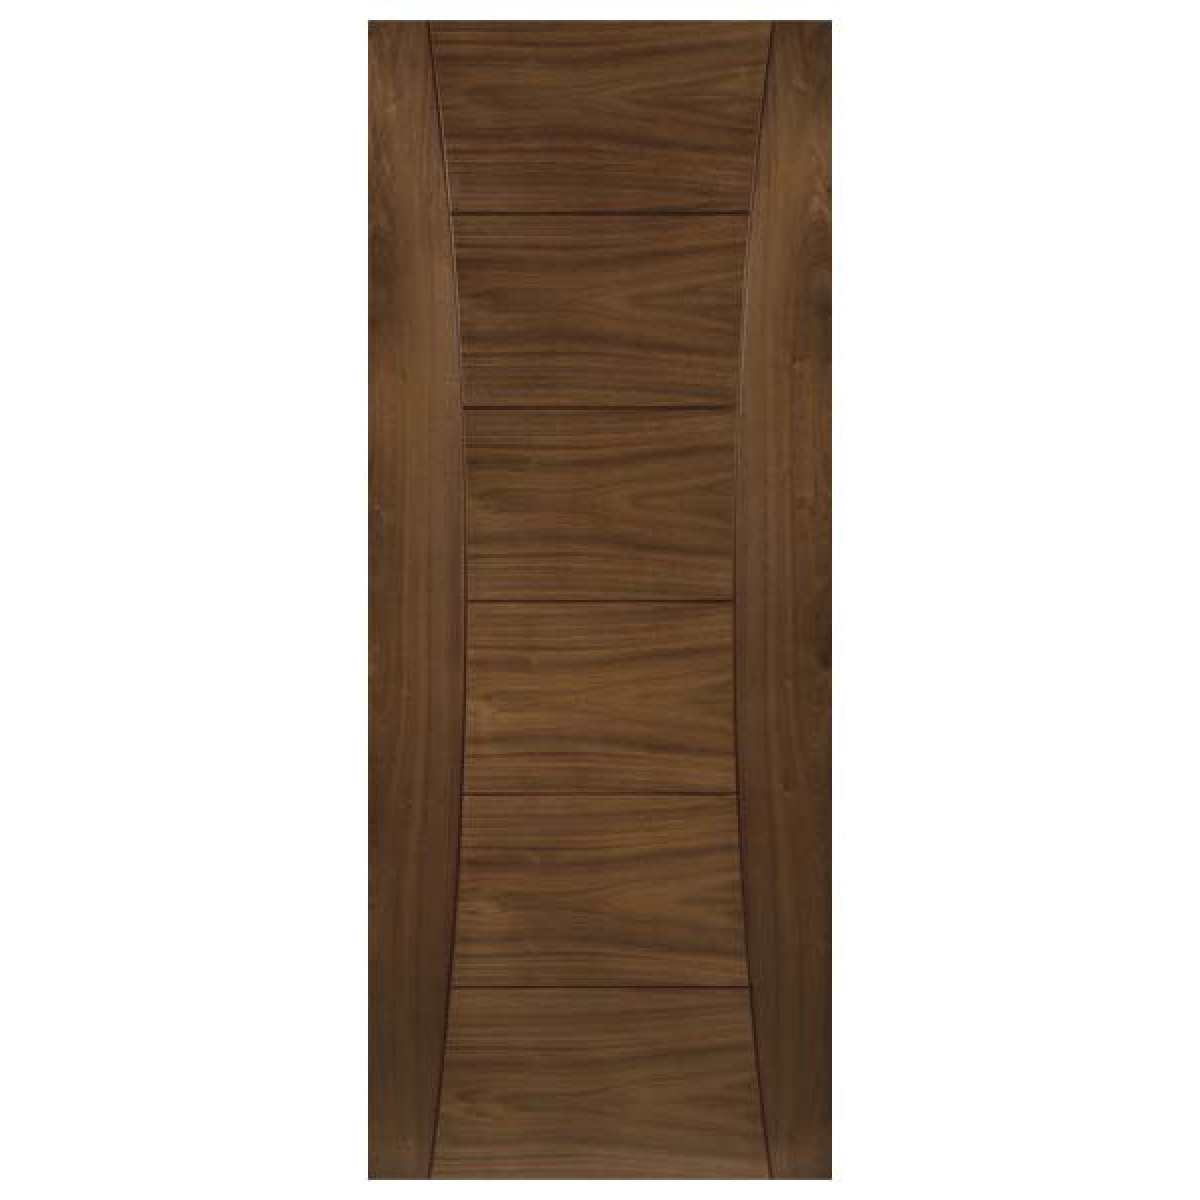 pamplona walnut flat websters Image by Websters Timber